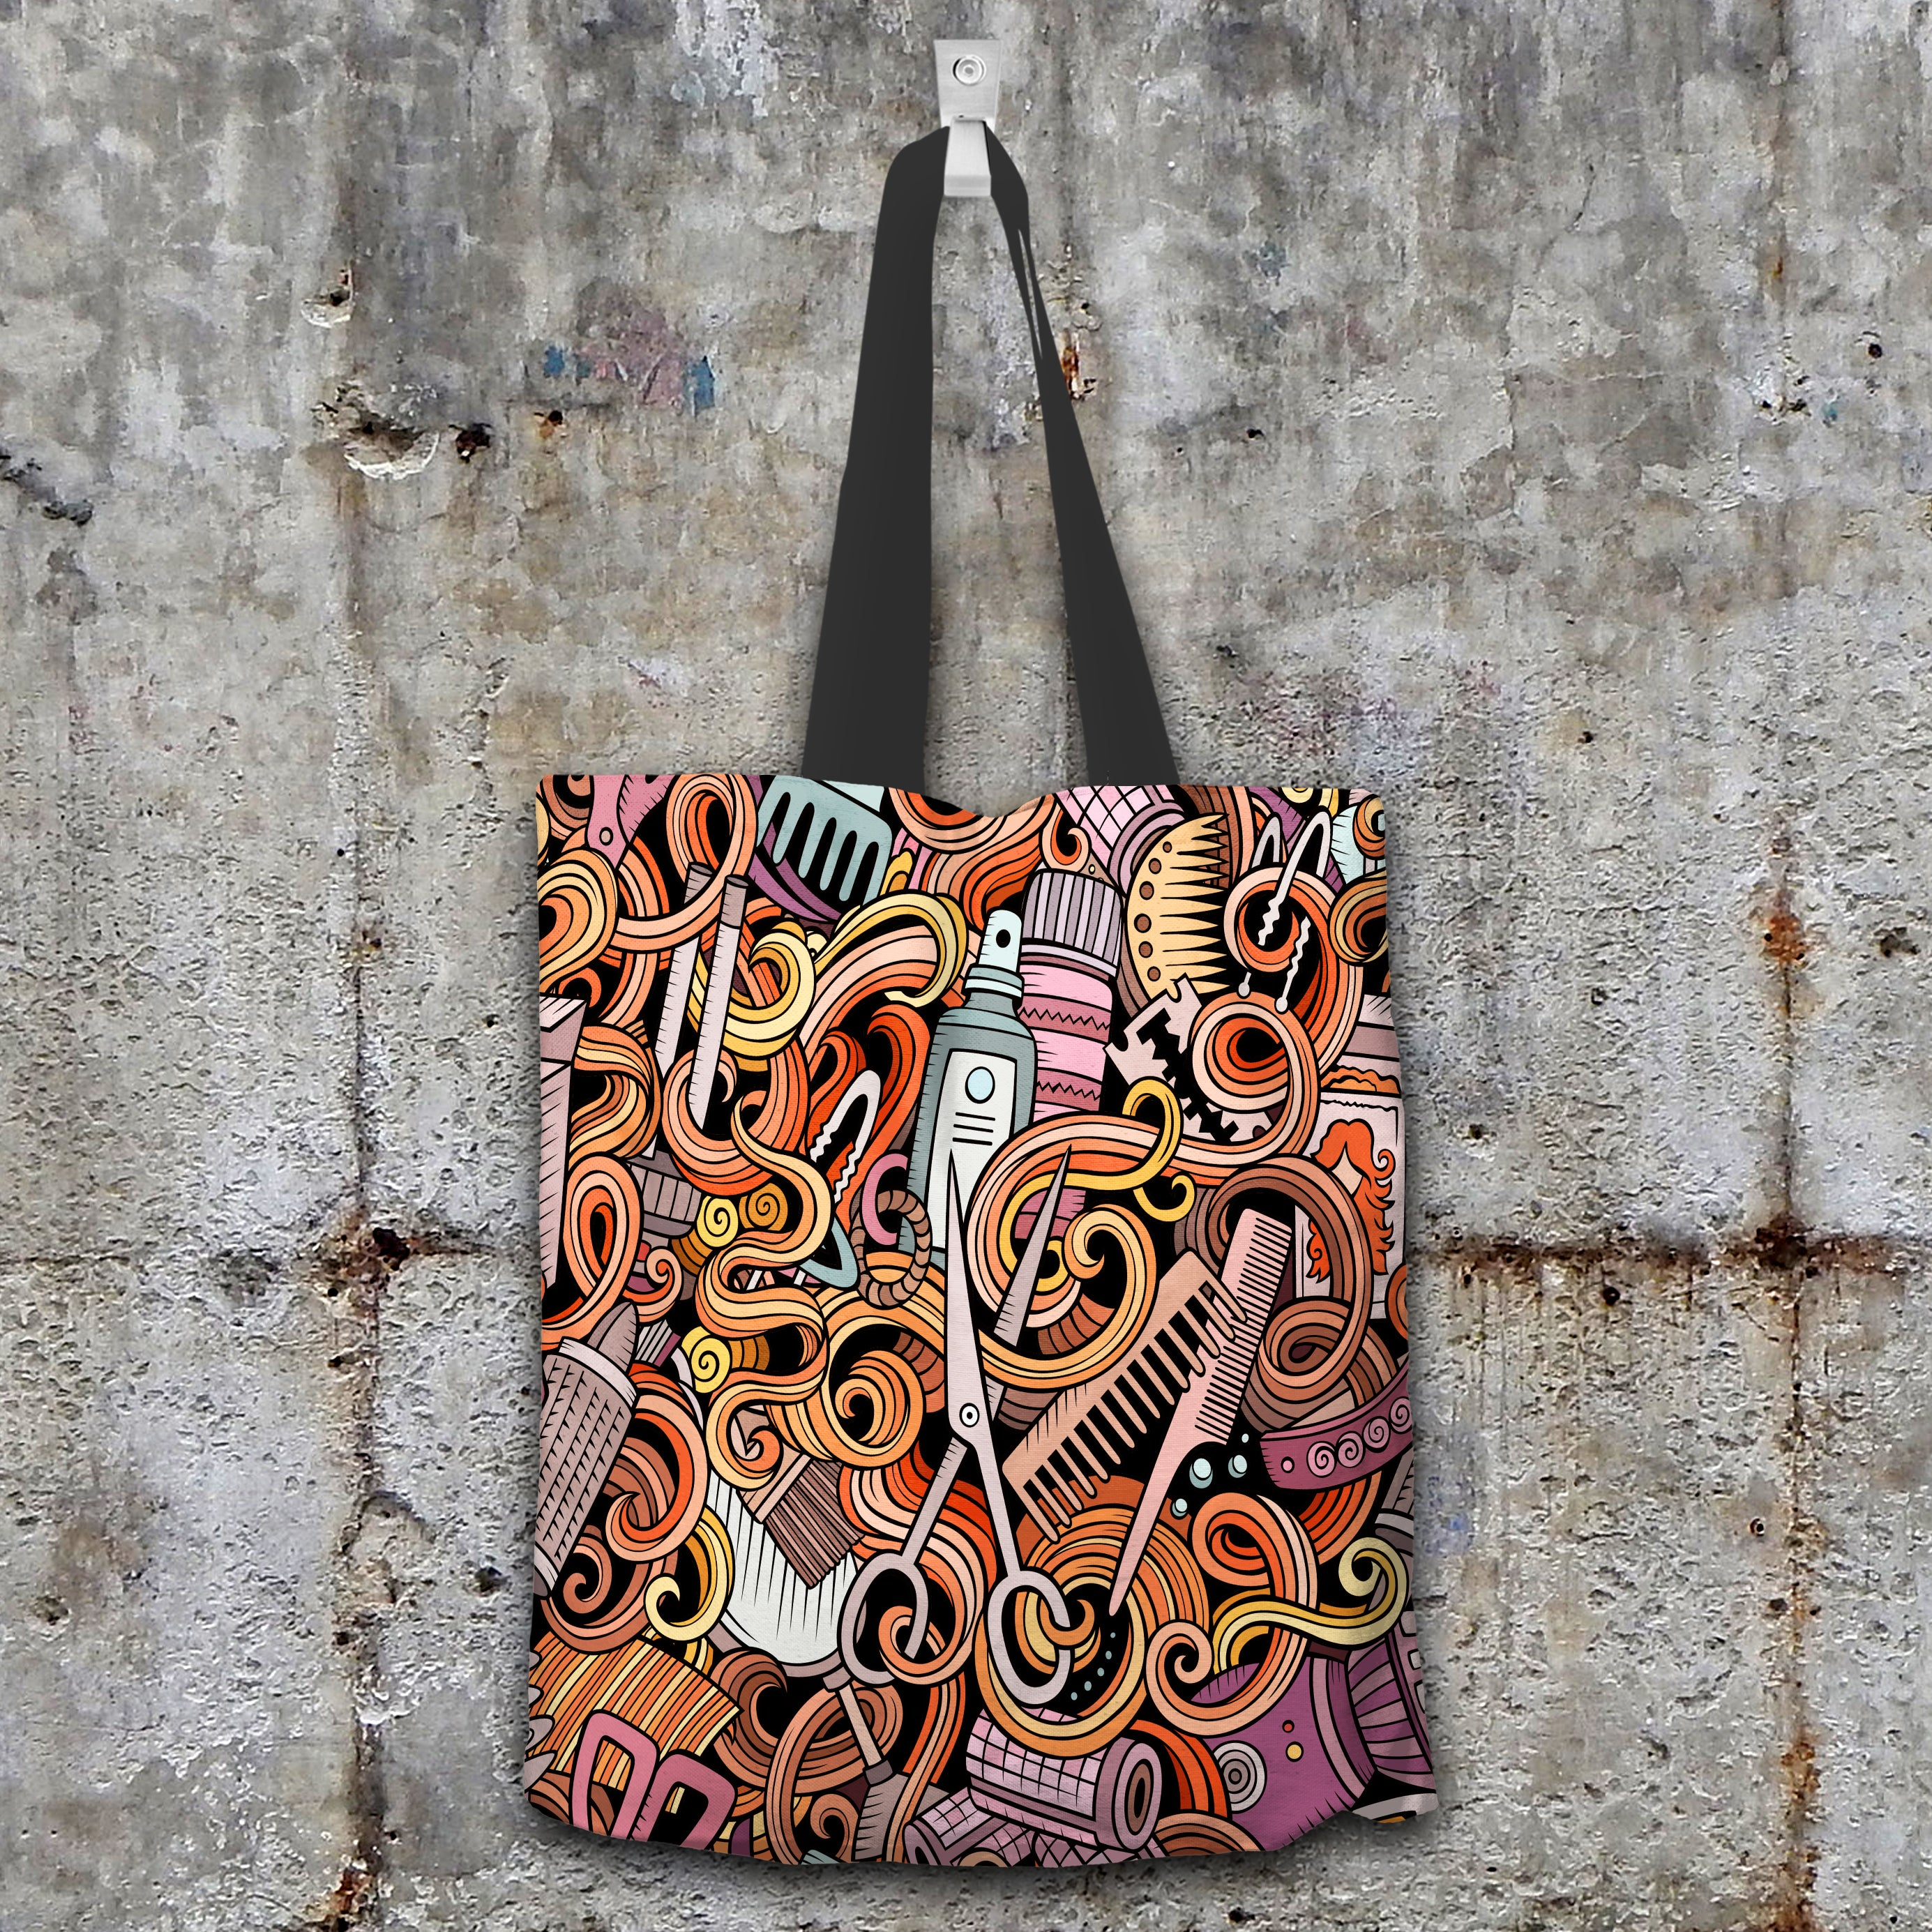 Hairdresser Tote Bag